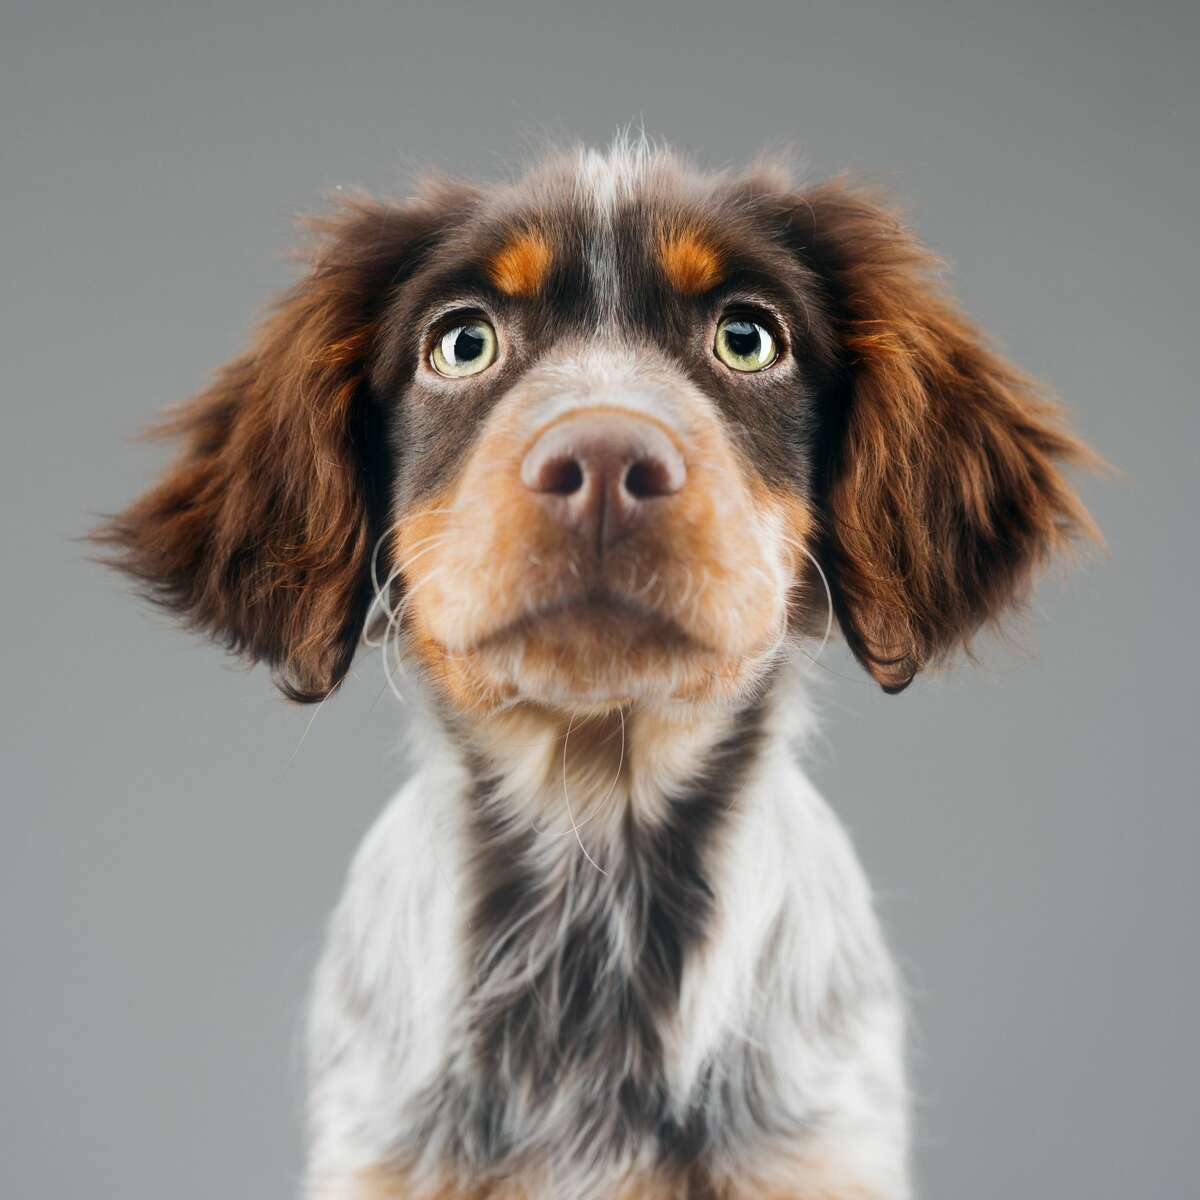 """20. Nashville, Tennessee Share of homes for sale that mention """"dog"""": 1% Walk score: 28 Top dog: Mixed breed"""